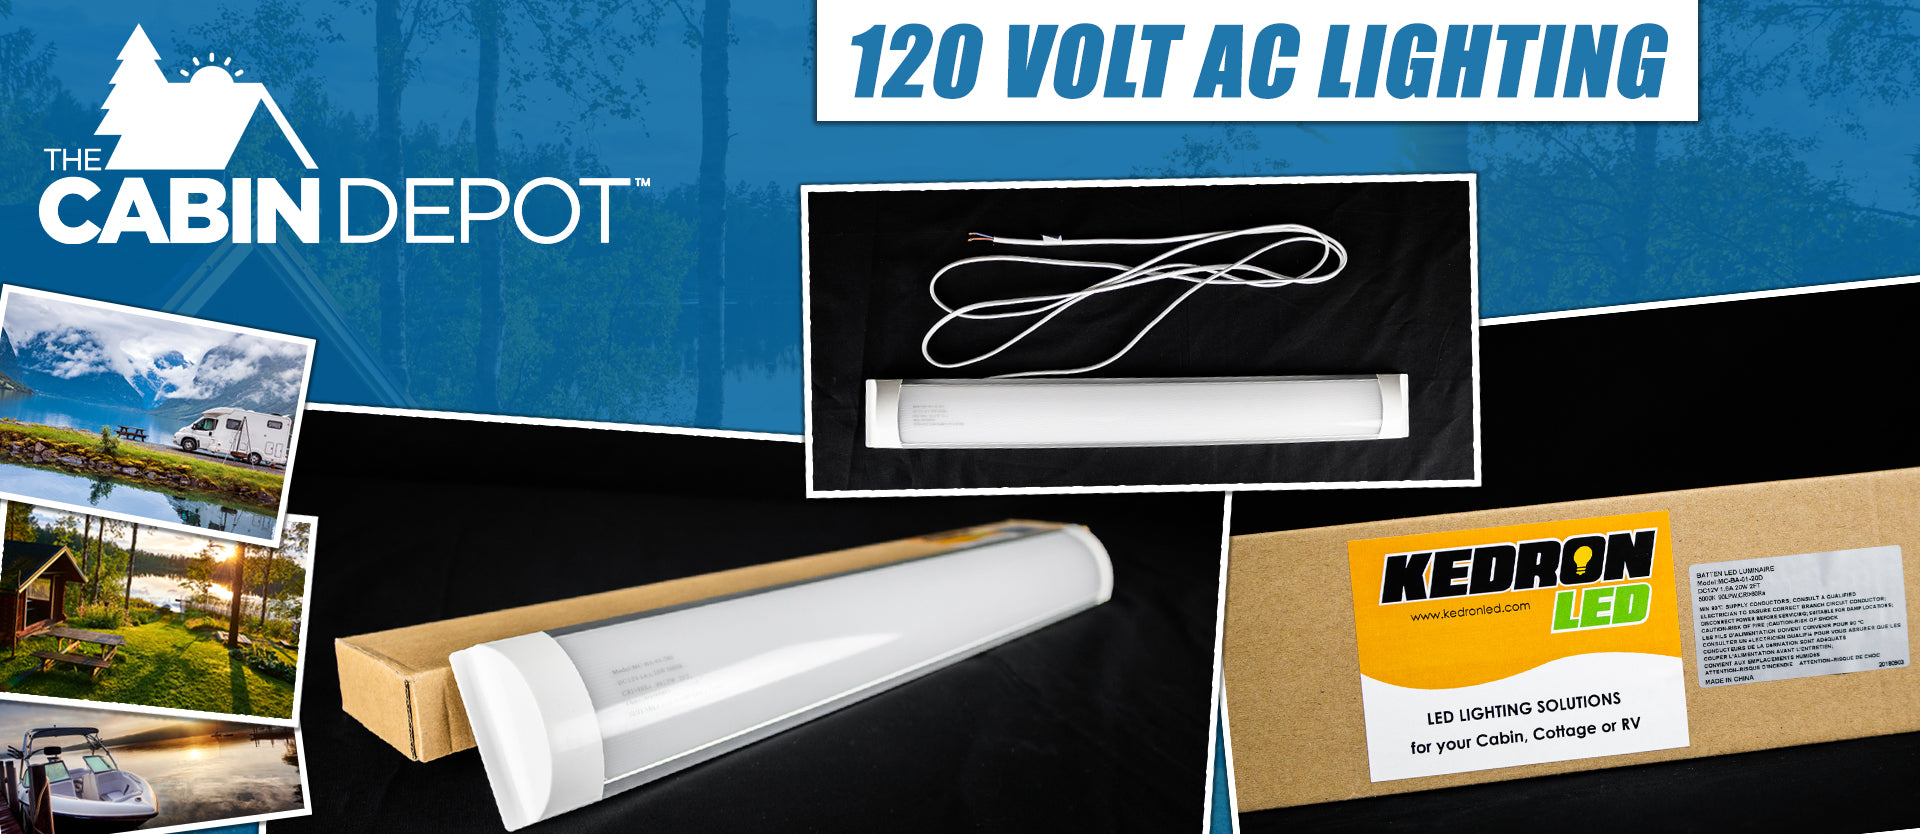 120 Volt LED Lighting Off Grid The Cabin Depot ™ Canada